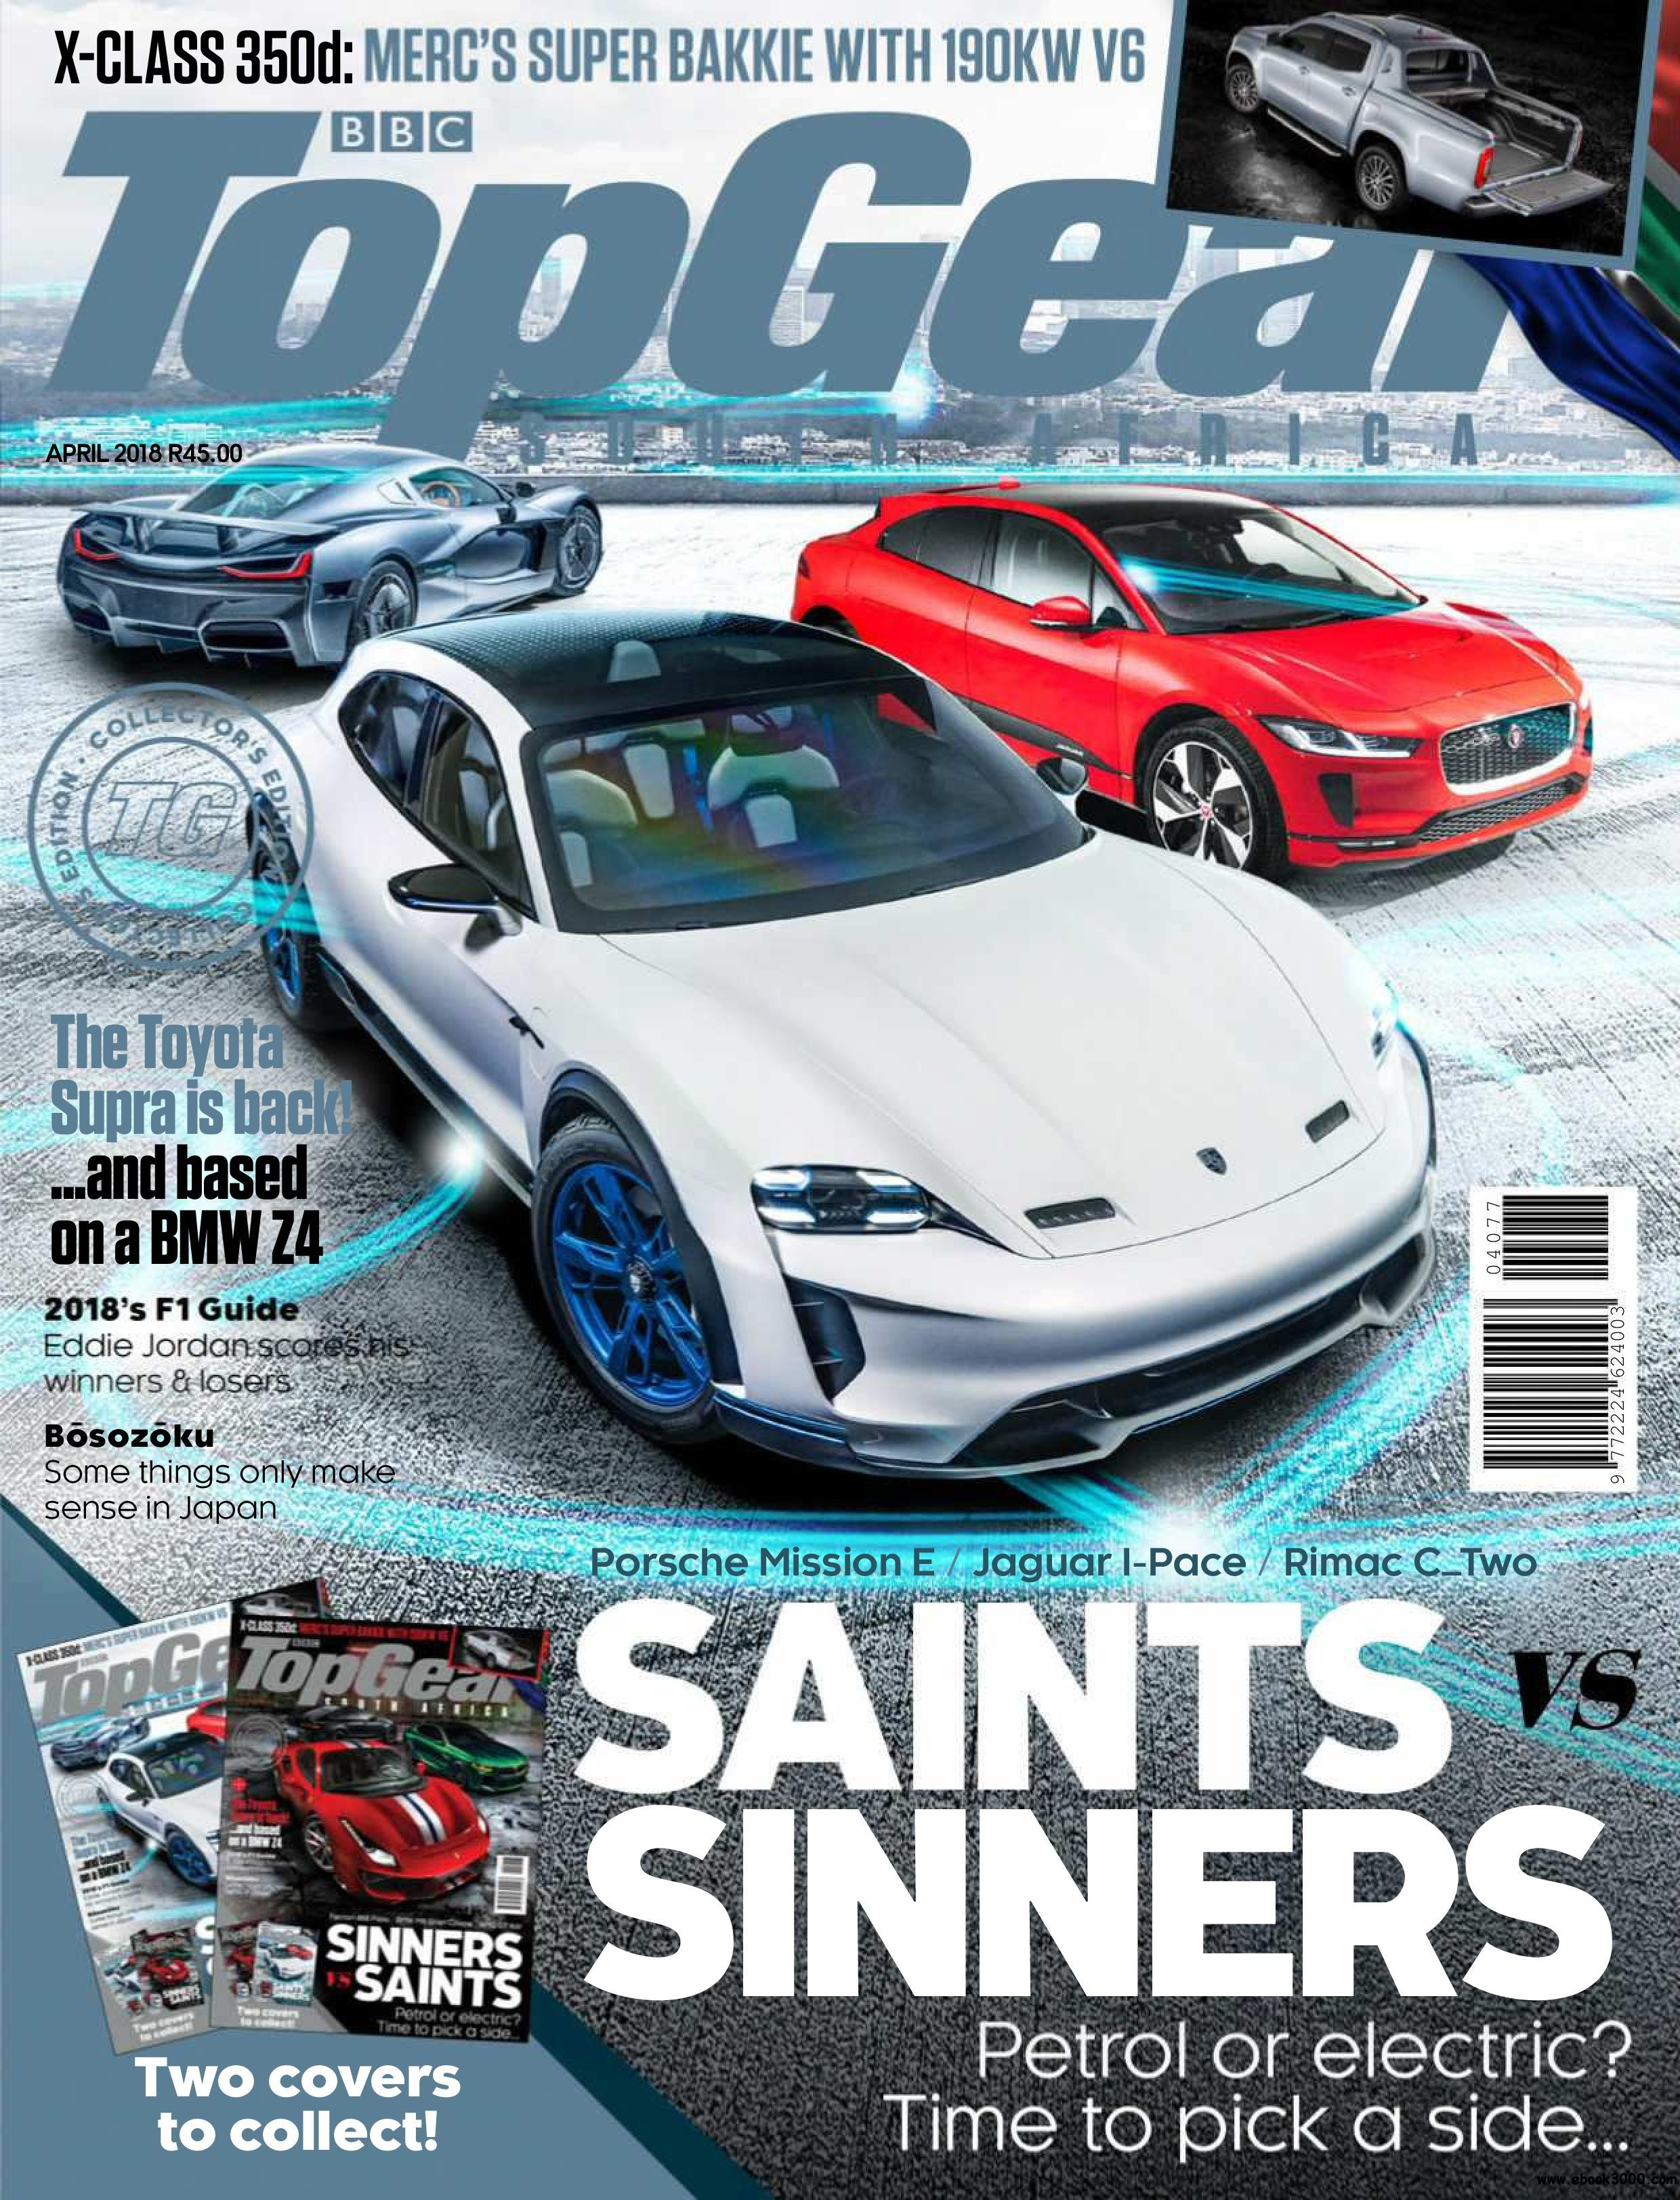 Bbc top gear south africa april 2018 free ebooks download bbc top gear south africa april 2018 fandeluxe Gallery